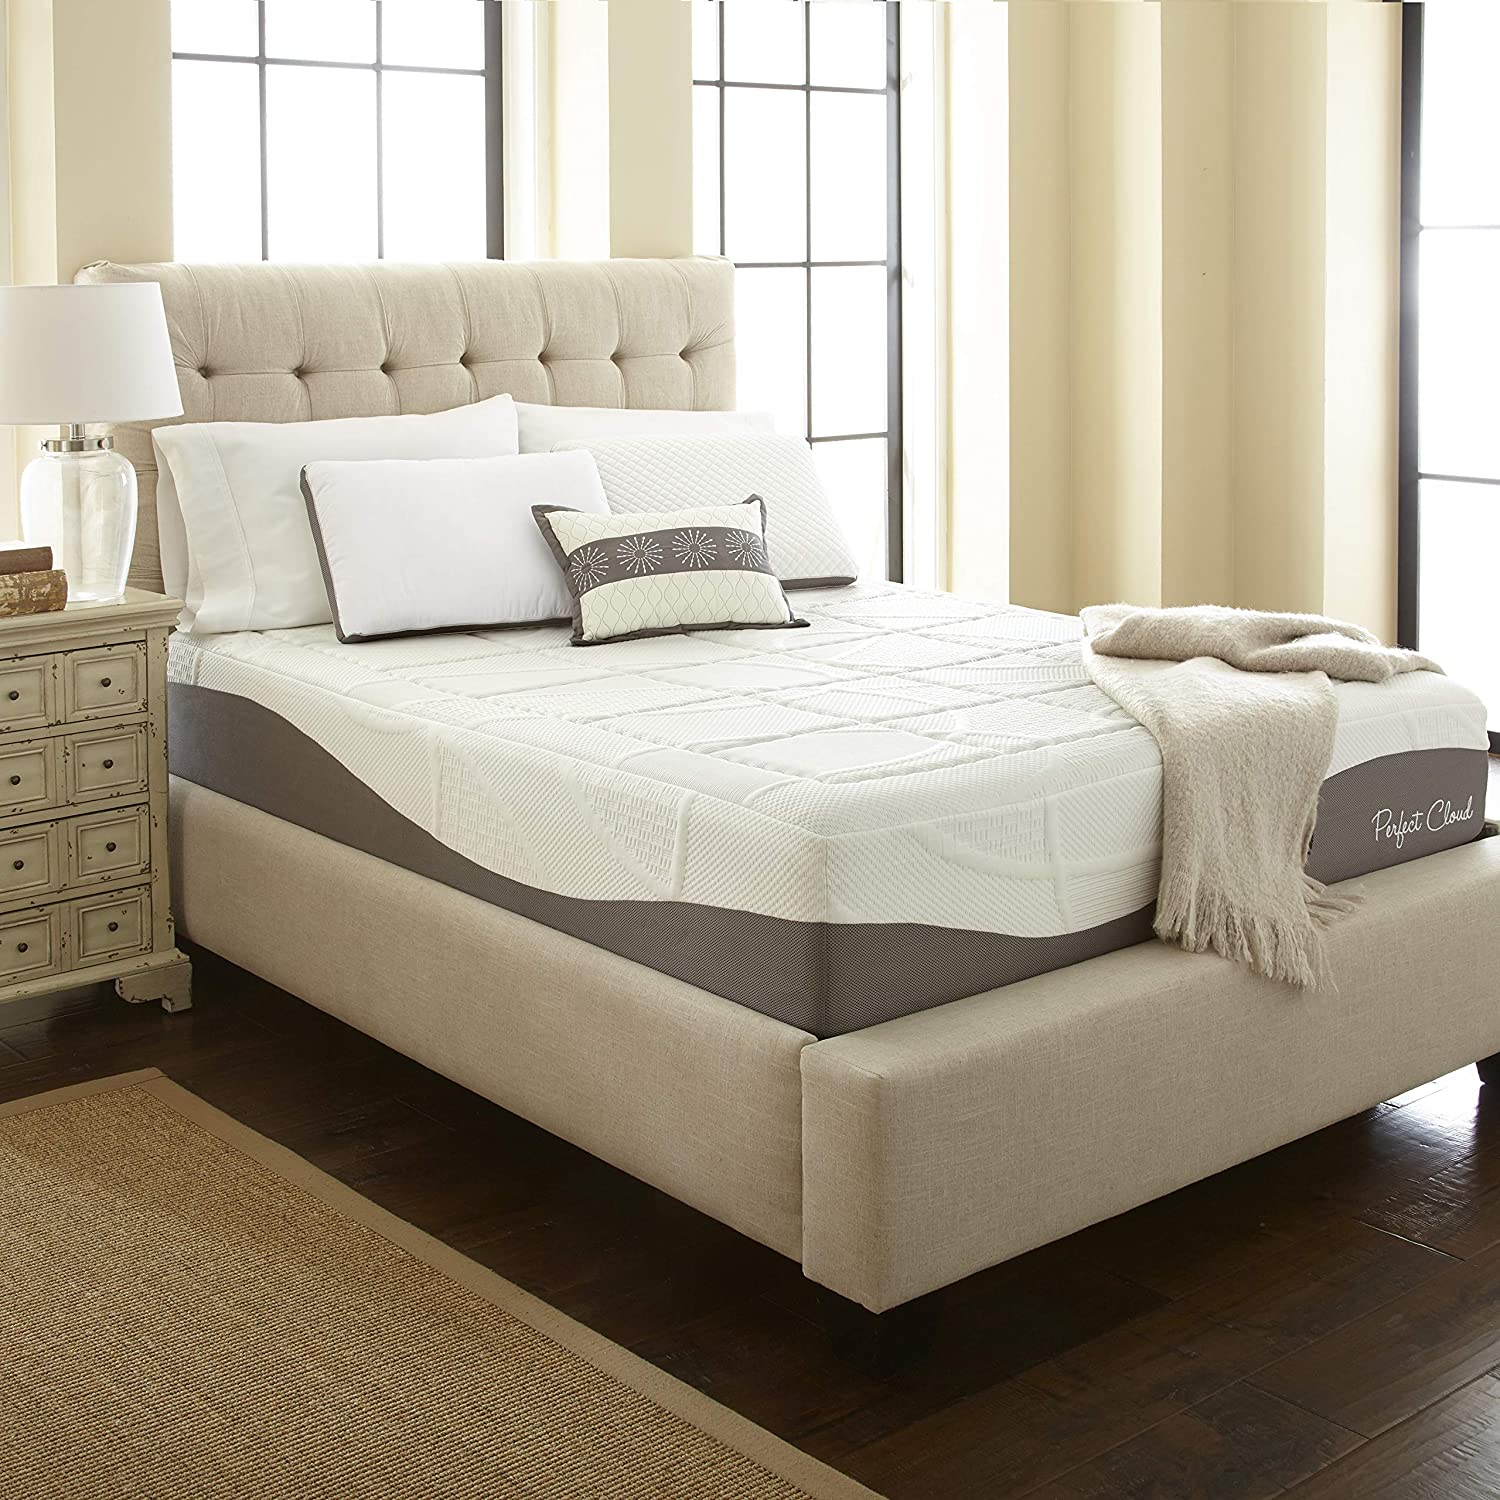 Perfect Cloud Elegance 12-inch Memory Foam Mattress (Twin)